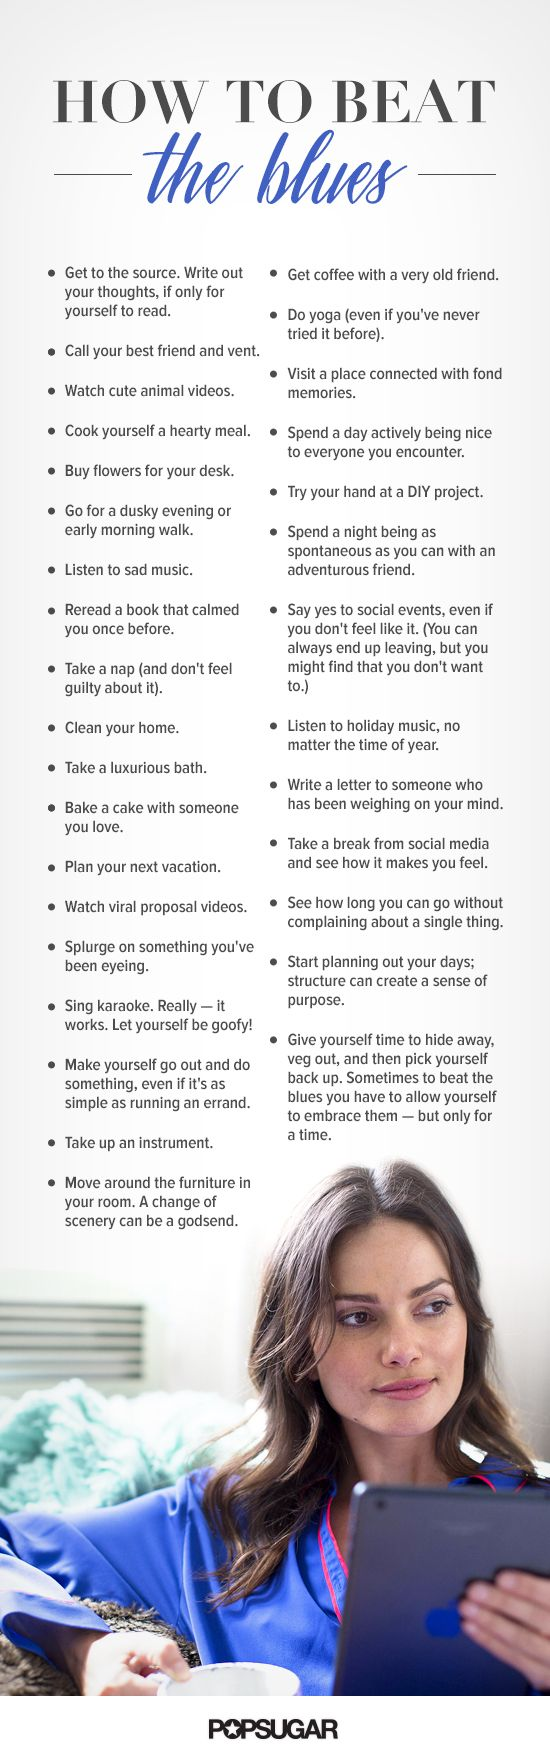 "Some good ideas for when you are feeling anxious, stressed, down or in recovery. Build your own ""Coping skills list"" for those difficult days when you are feeling vulnerable."